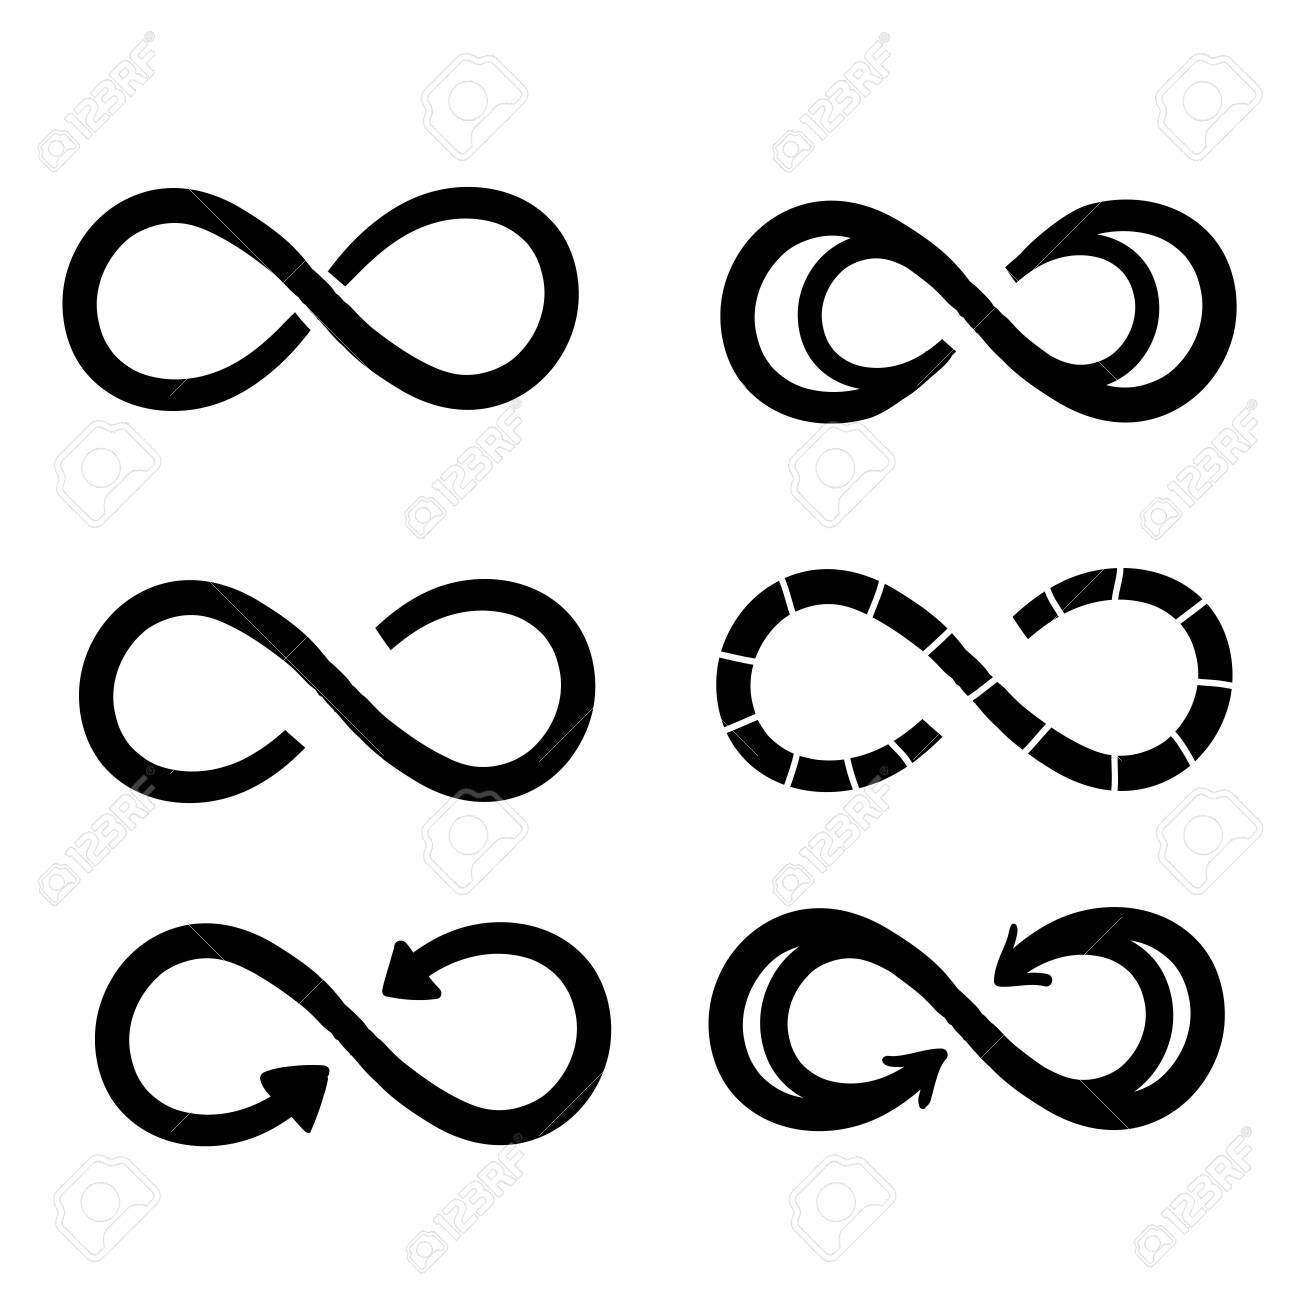 Infinity symbols. Eternal, limitless, endless, life logo or tattoo concept.hand drawn doodle style vector isolated - 137782493